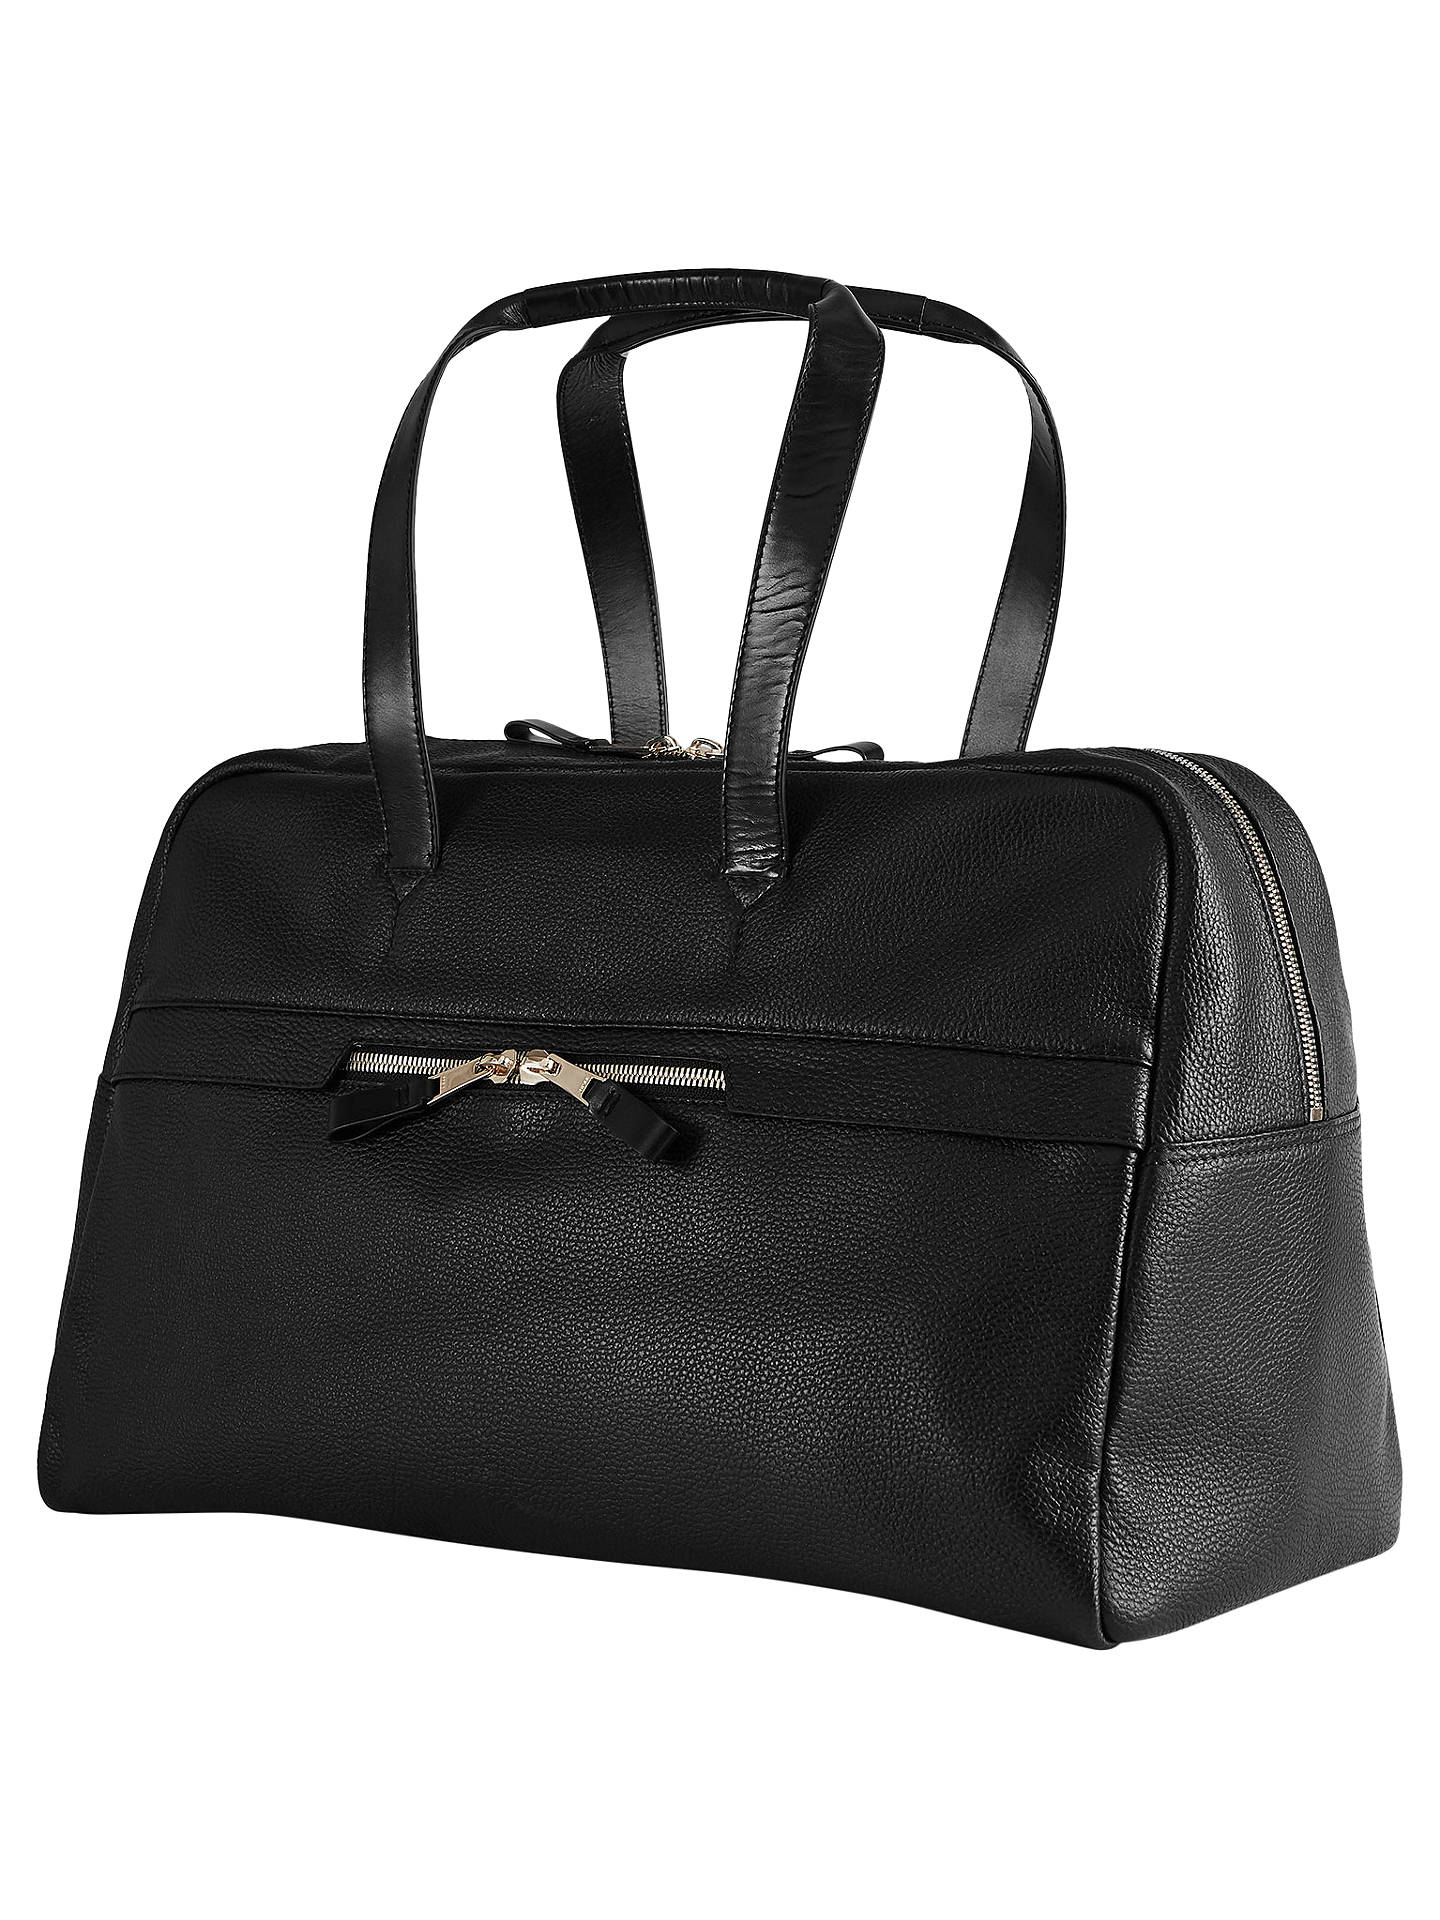 78543e86f701 Buy Reiss Bournemouth Leather Duffle Bag